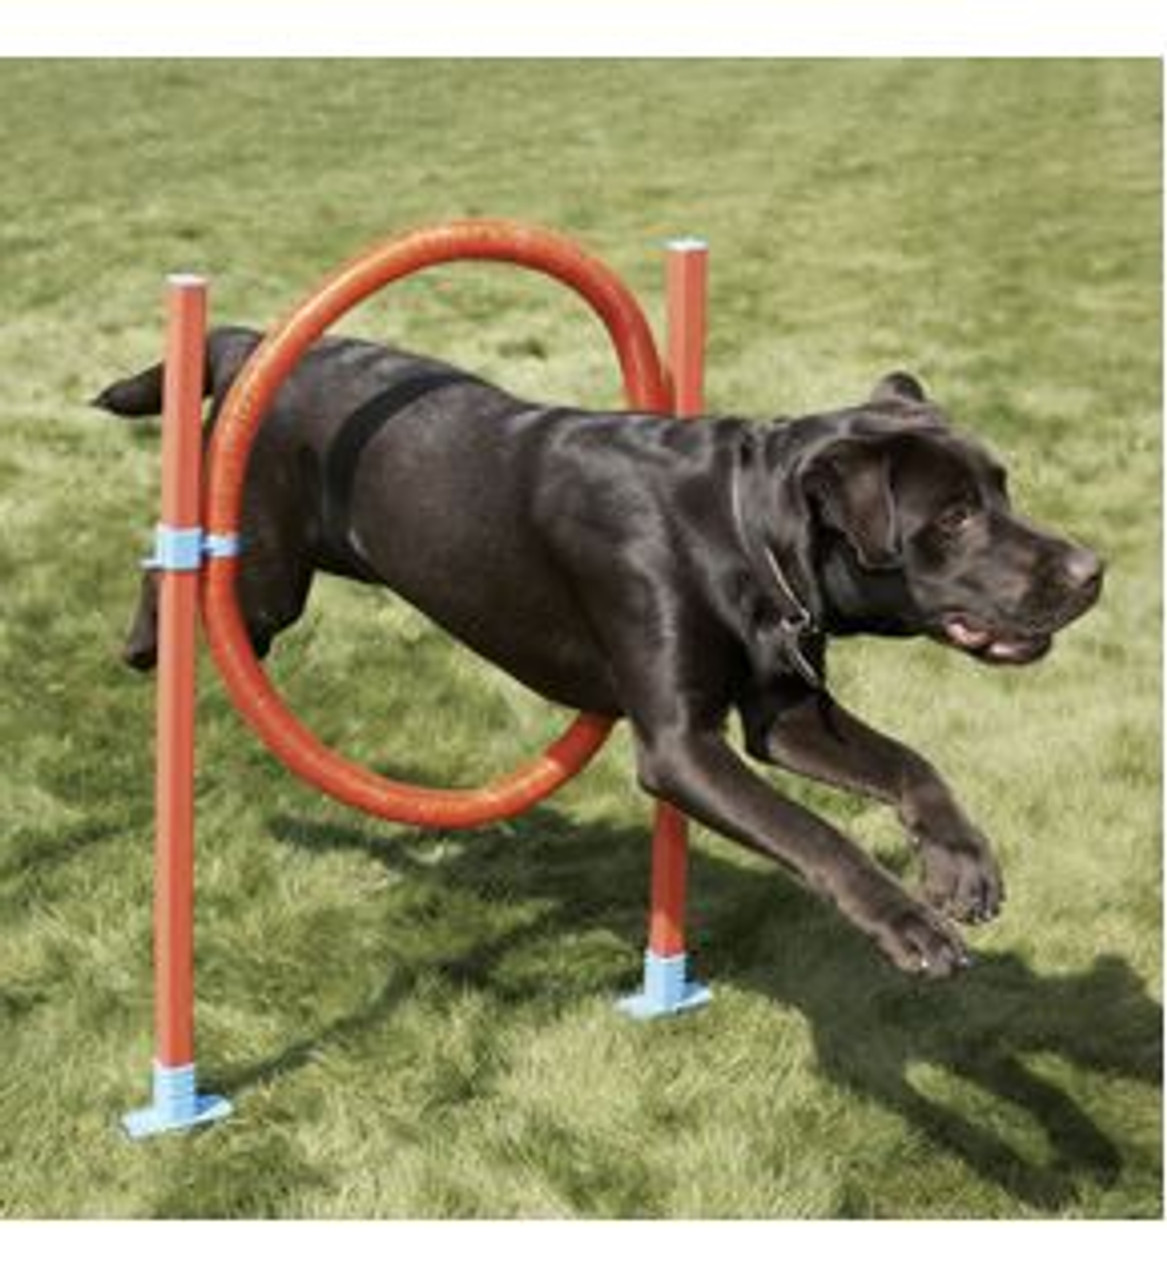 Easy Assemble Dog Pet Agility Hoop With 6 Height Positions Fun Exercise.